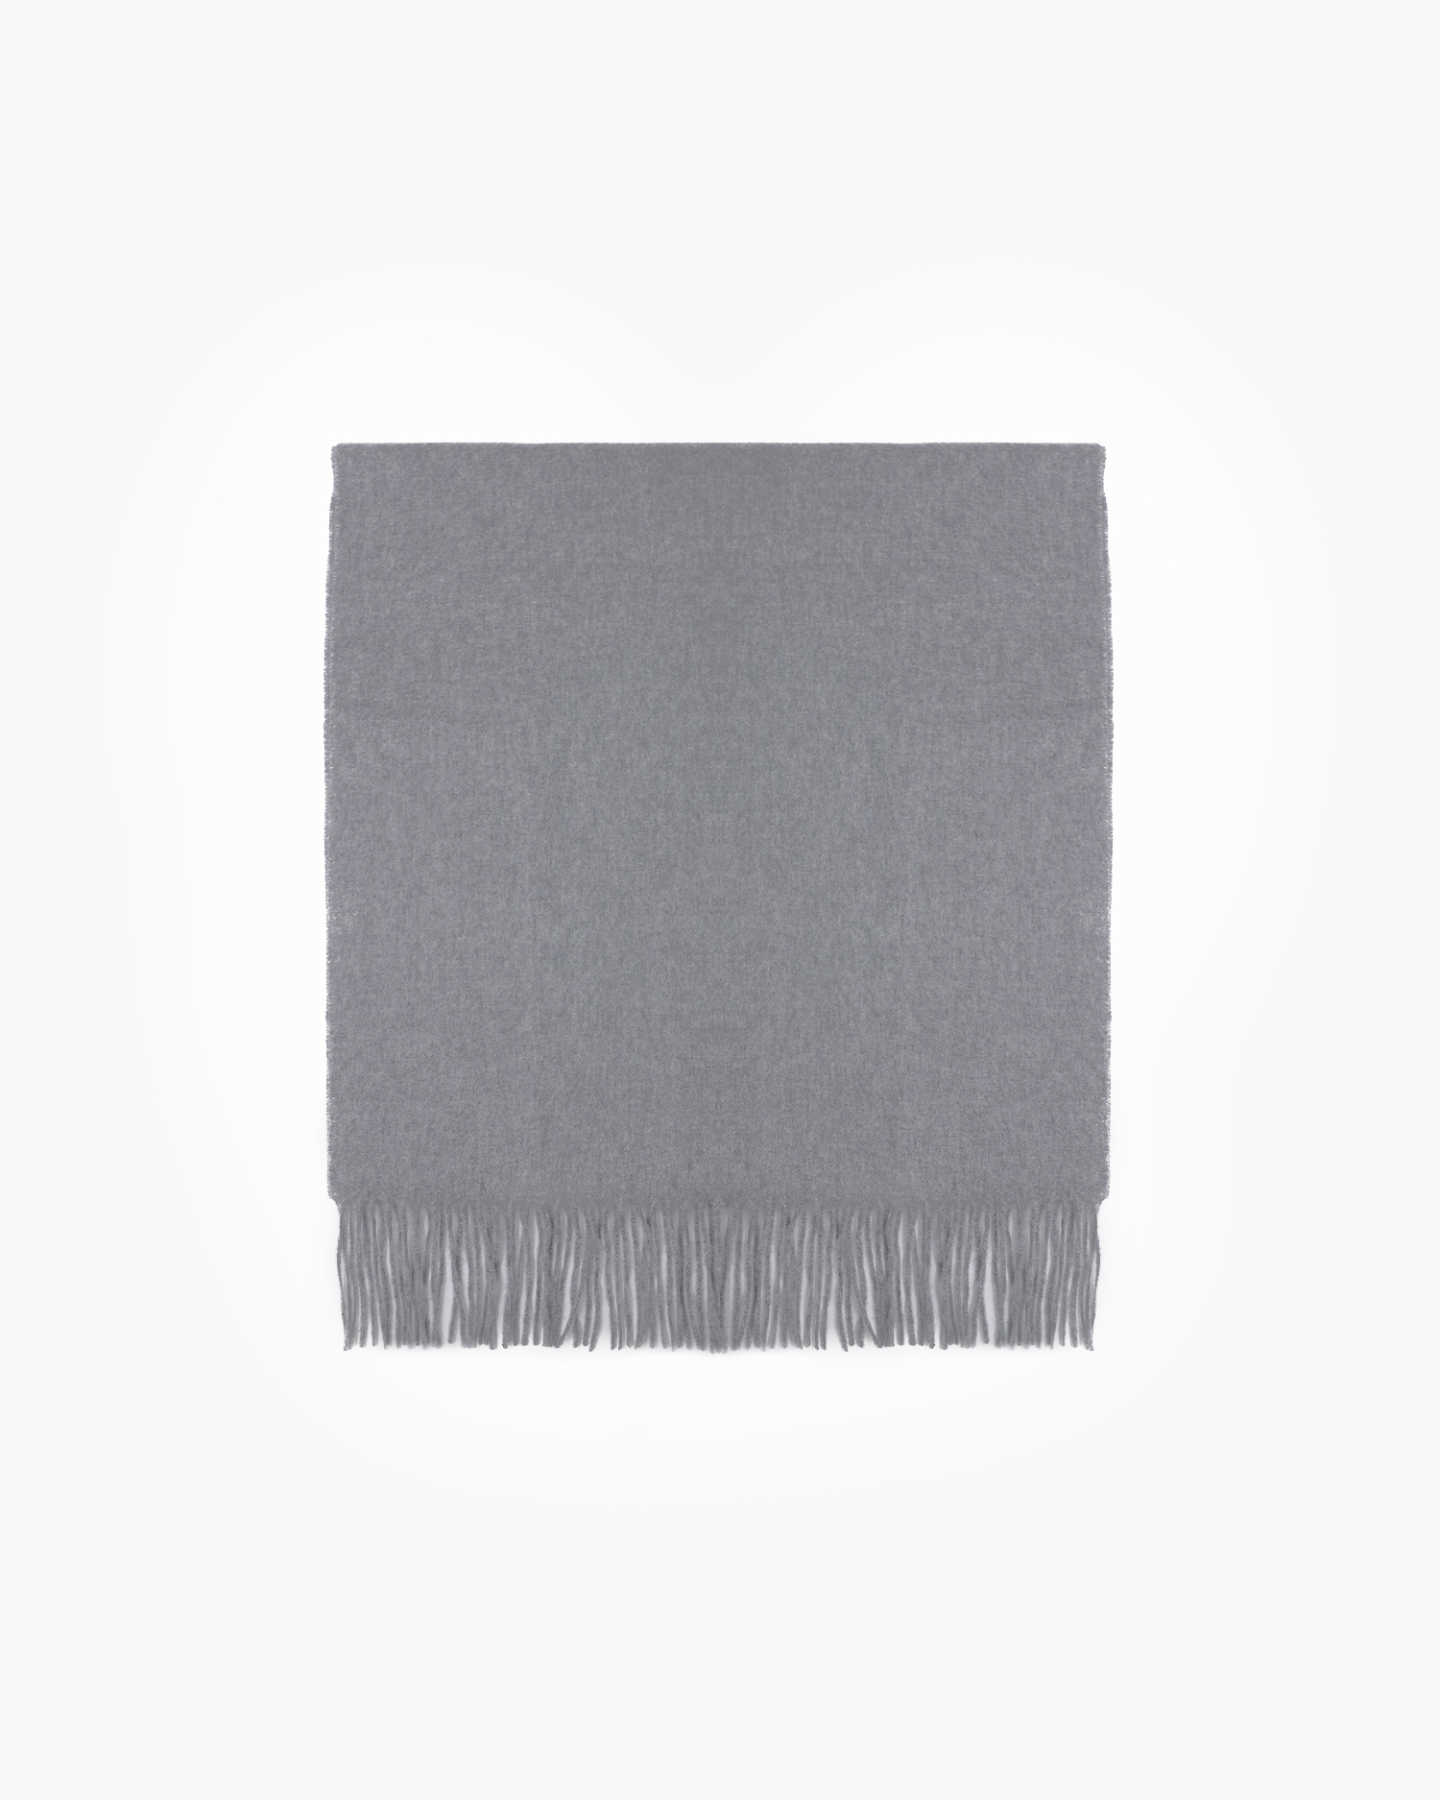 Cashmere throw blanket in grey